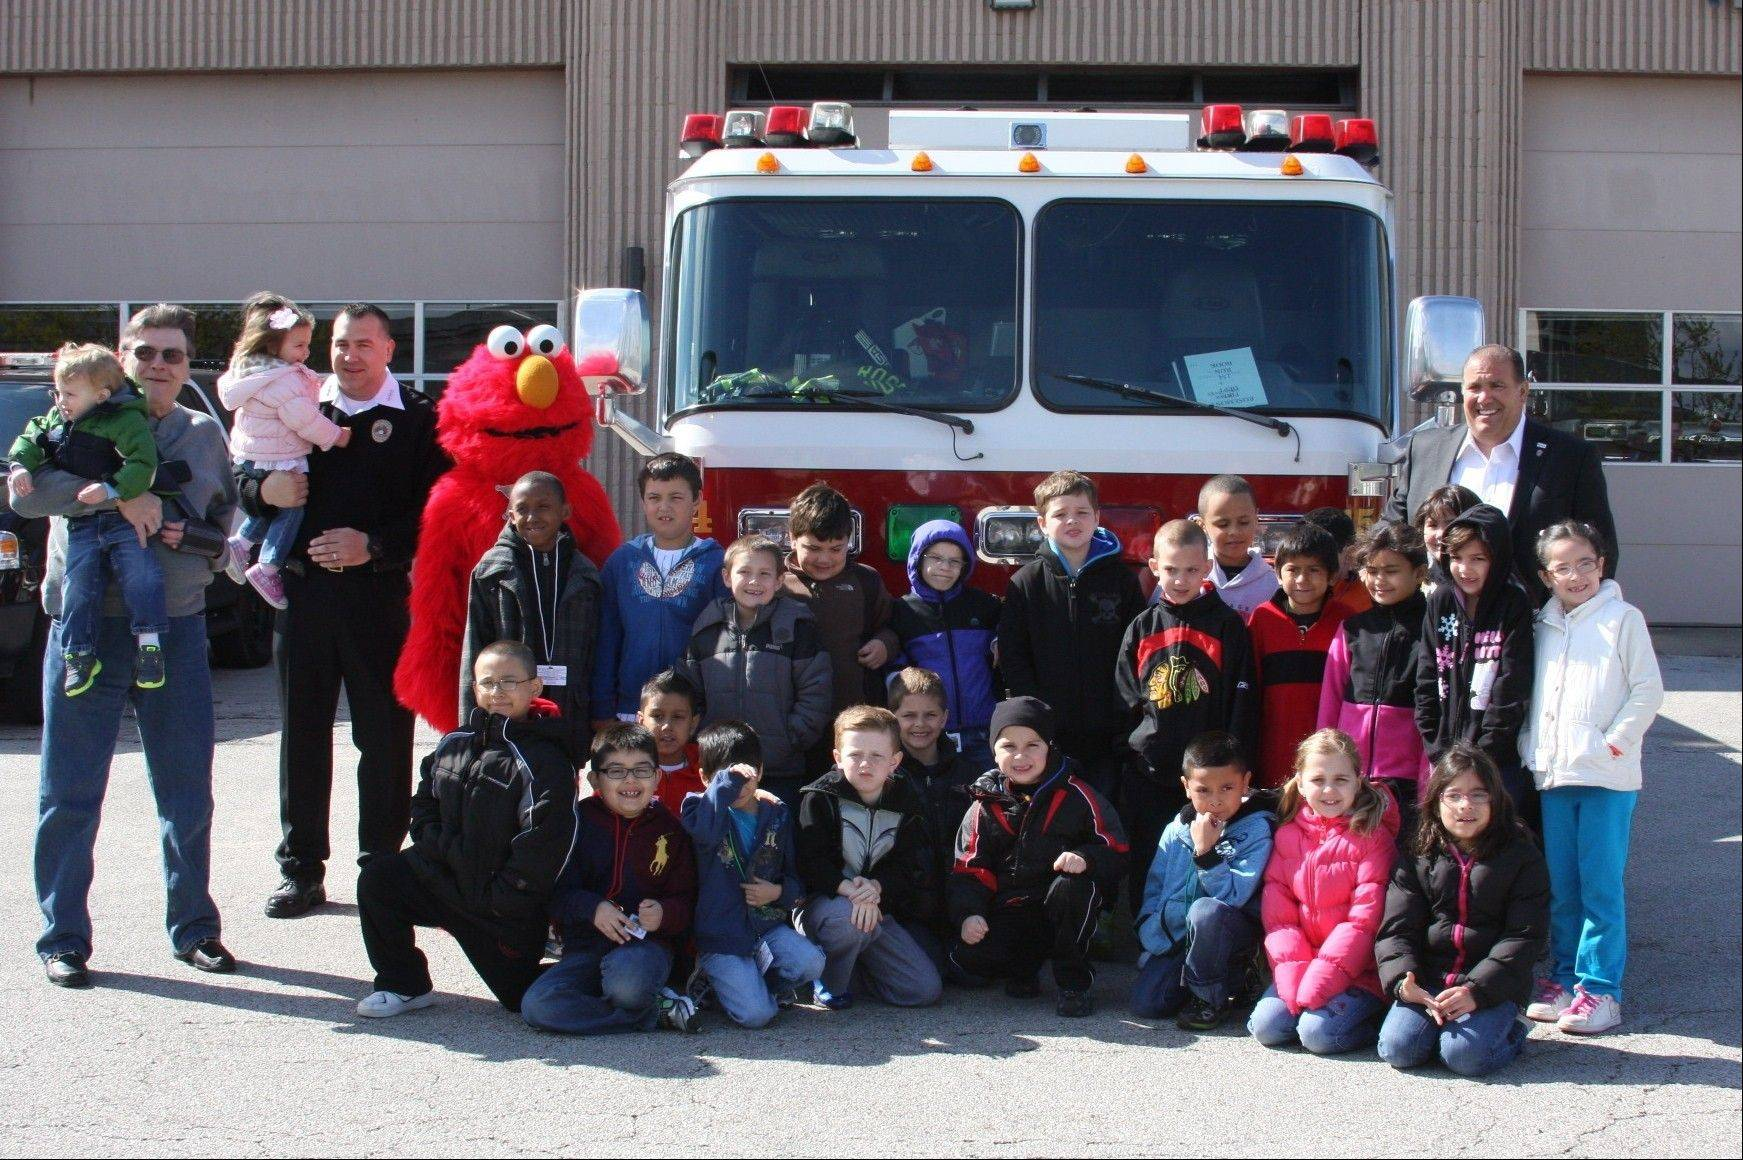 The first-grade class from Rosemont School with Elmo, Mayor Stephens, Superintendent of Public Safety Donald Stephens II and Chief of Public Safety Donald Stephens III.